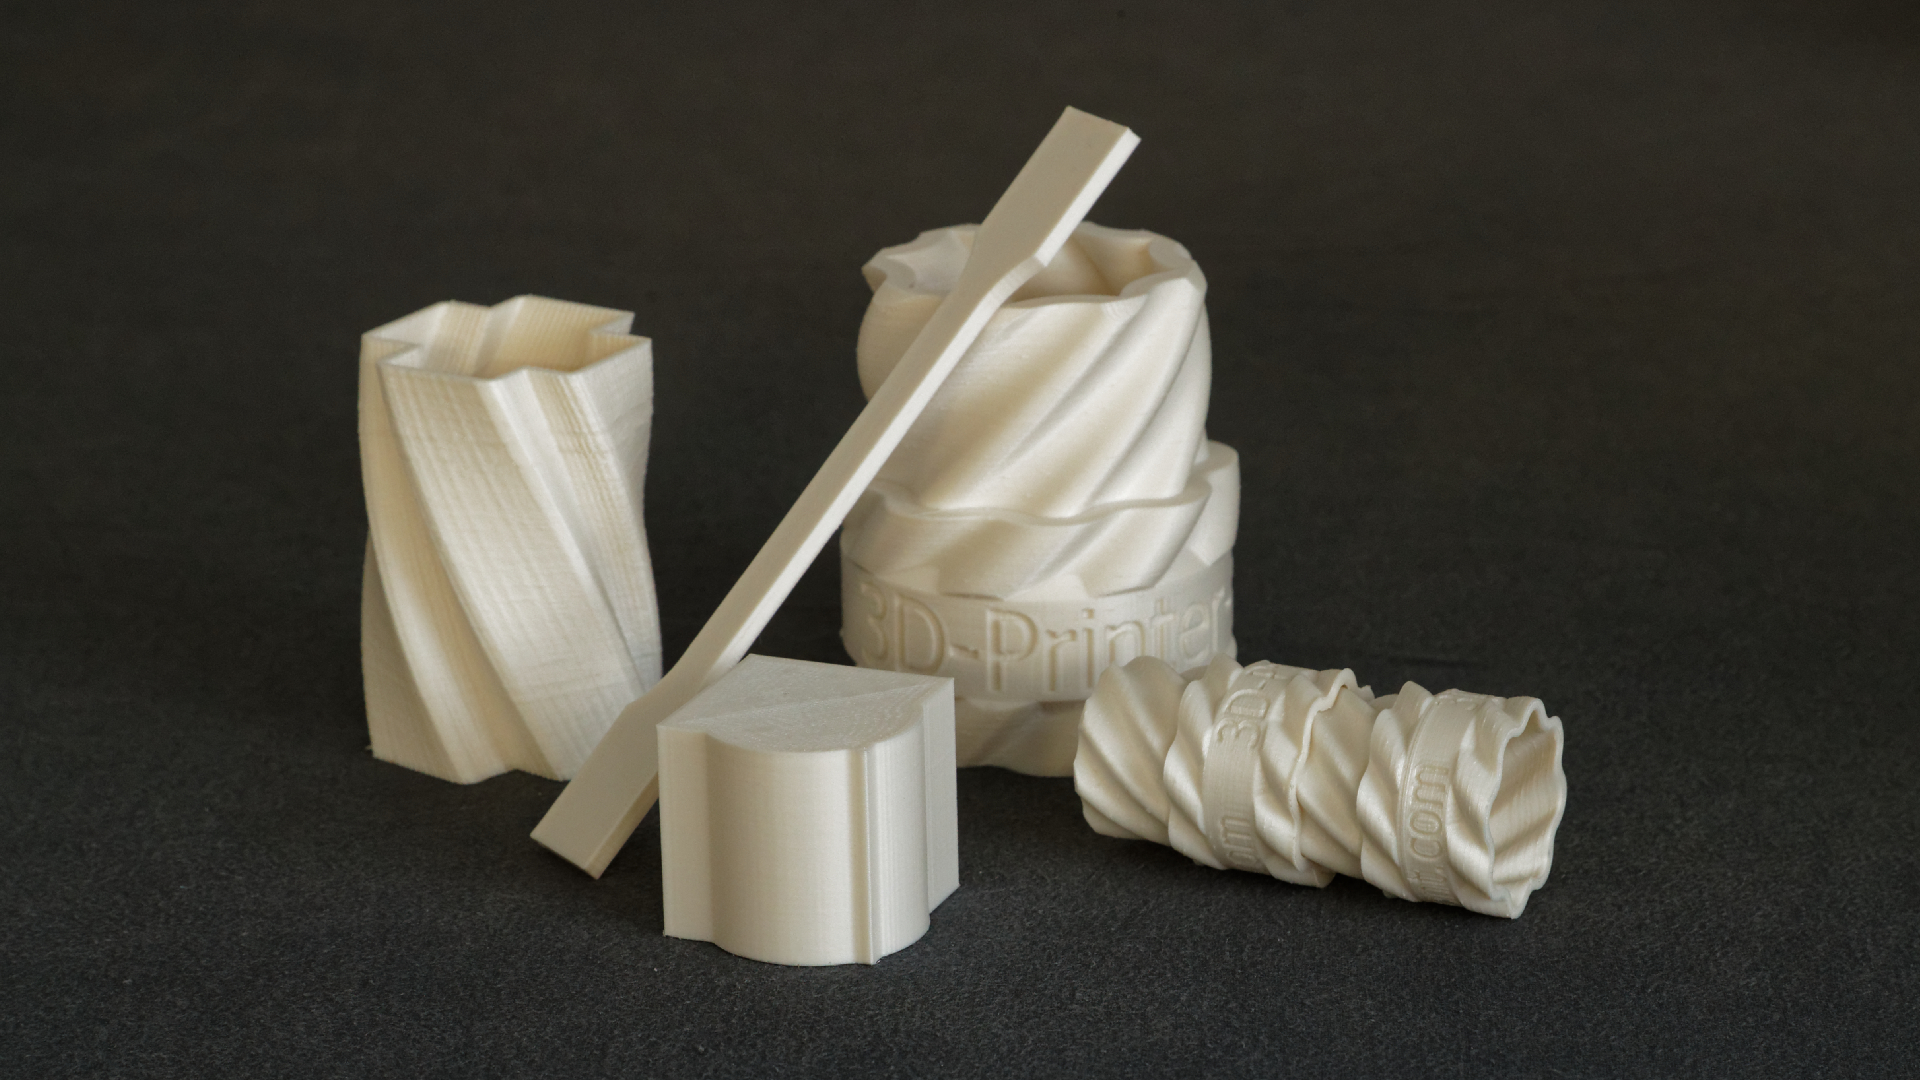 The complex and clean models produced by A1 Filament.